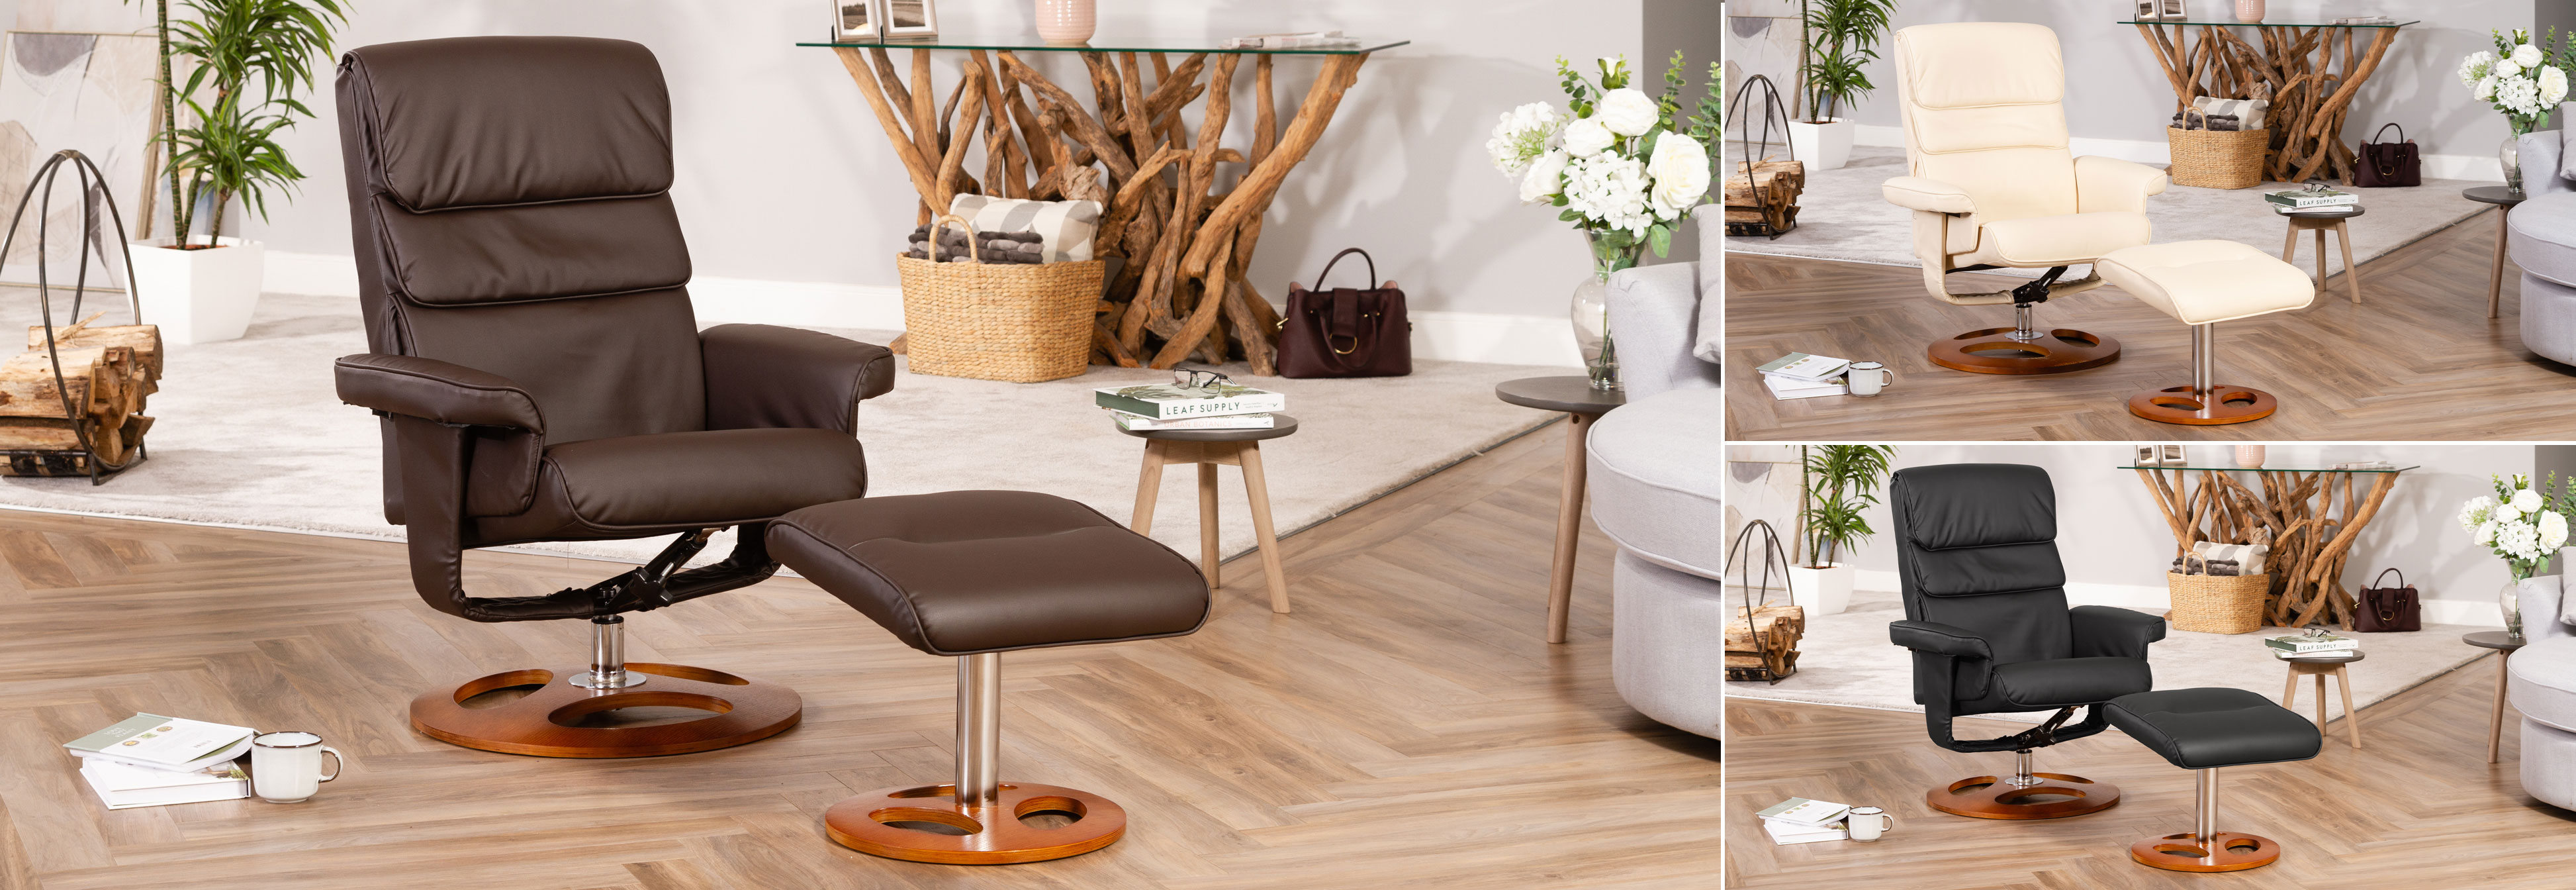 Banbury Massage and Heat Swivel Chair brown